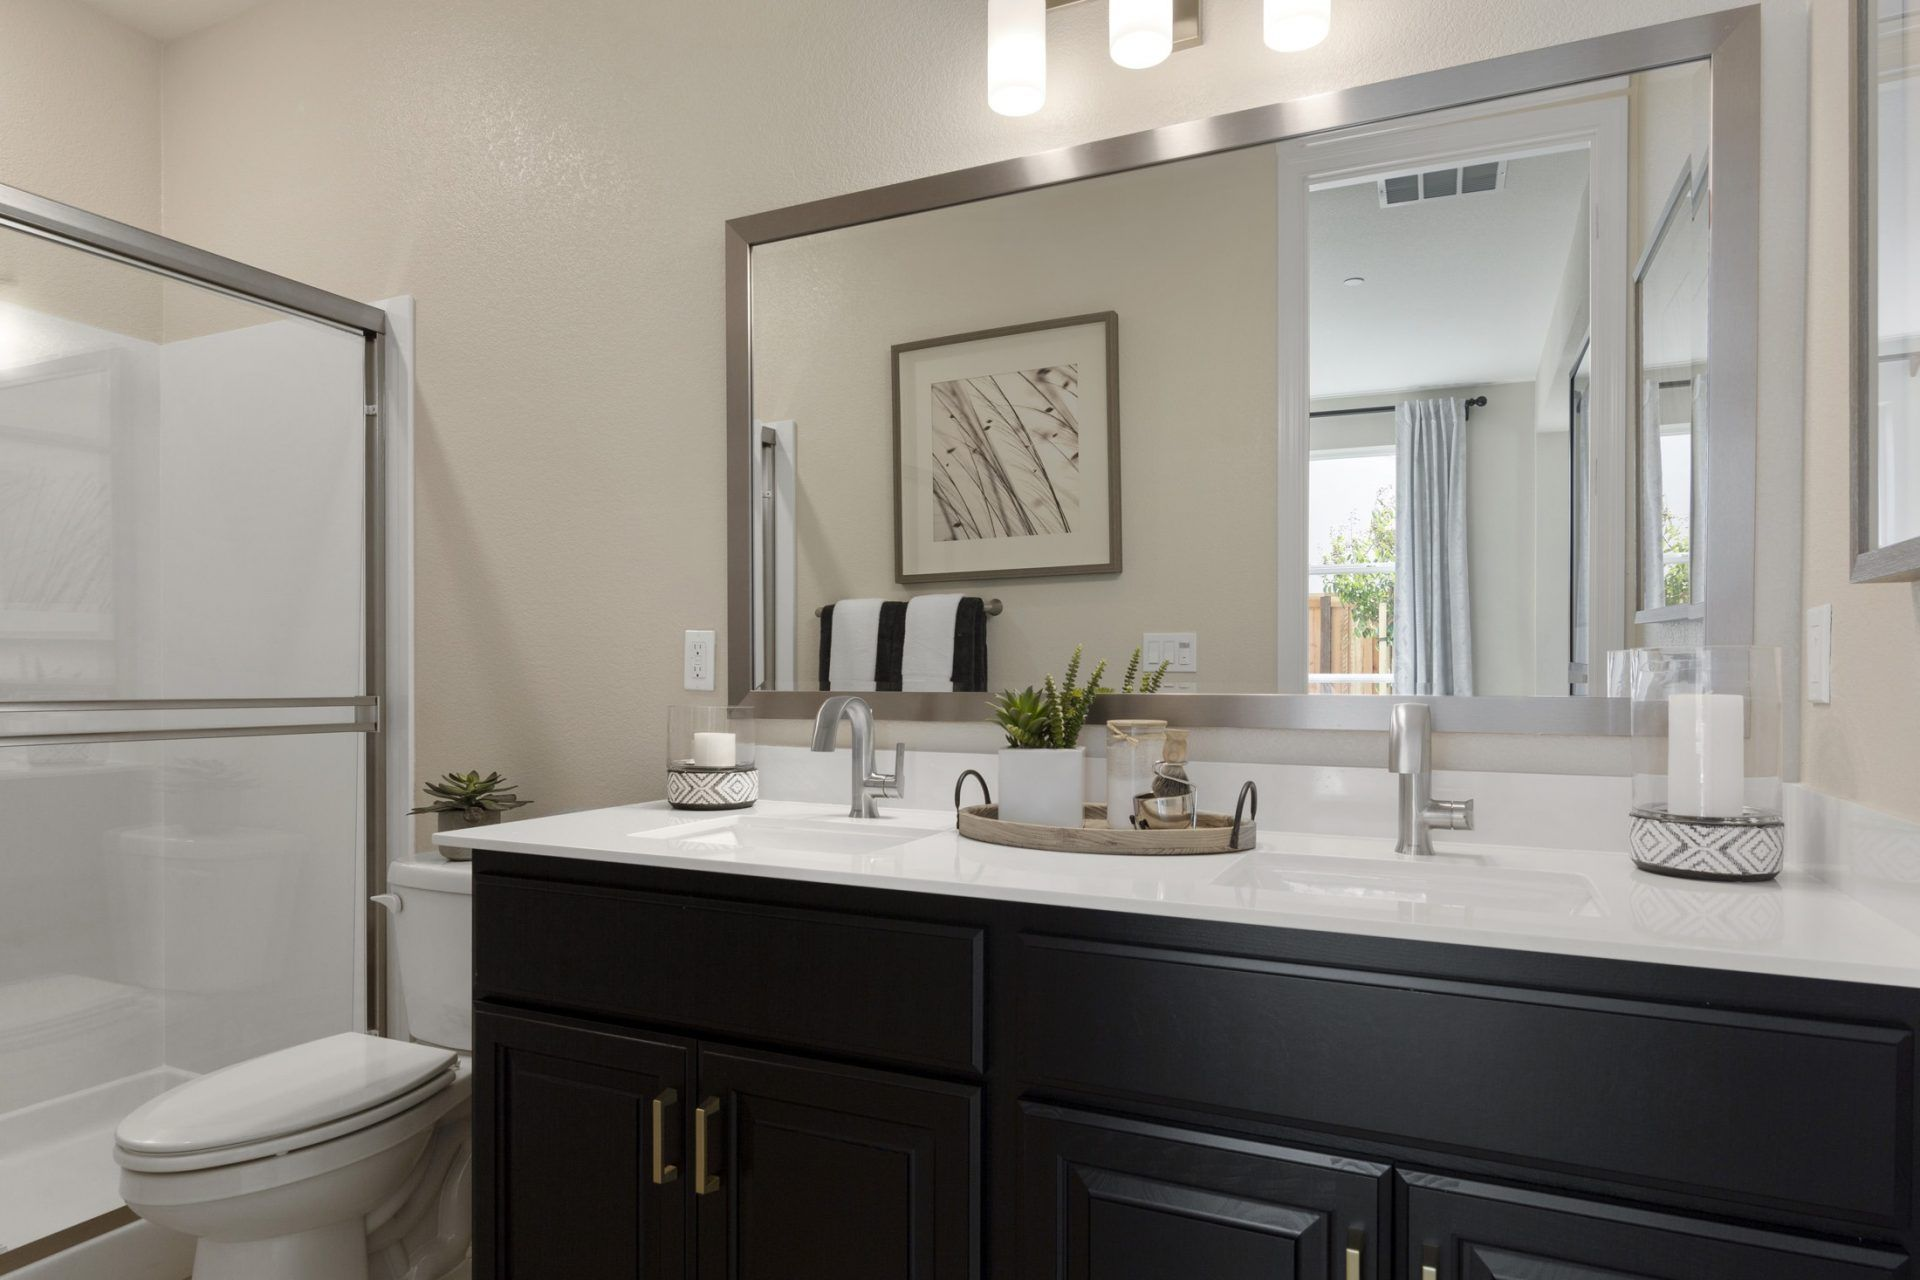 Bathroom featured in the Cyan By Blue Mountain Communities in Oakland-Alameda, CA